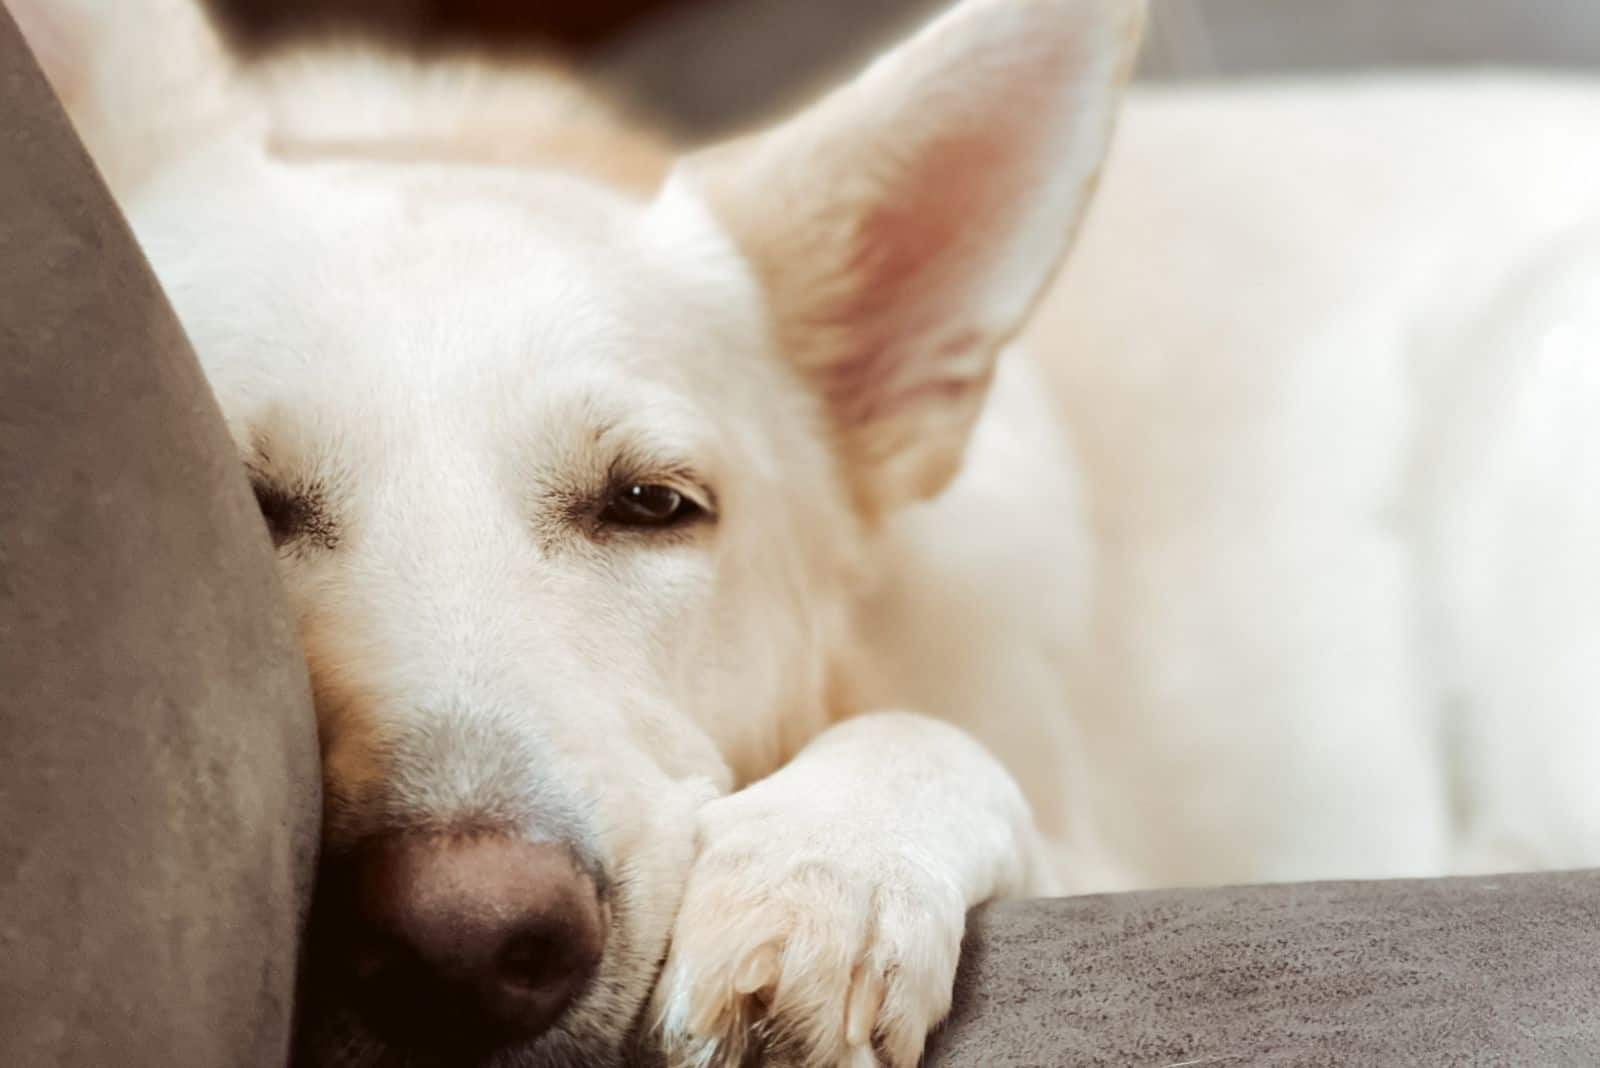 cute white puppy lying on a sofa in close up photo